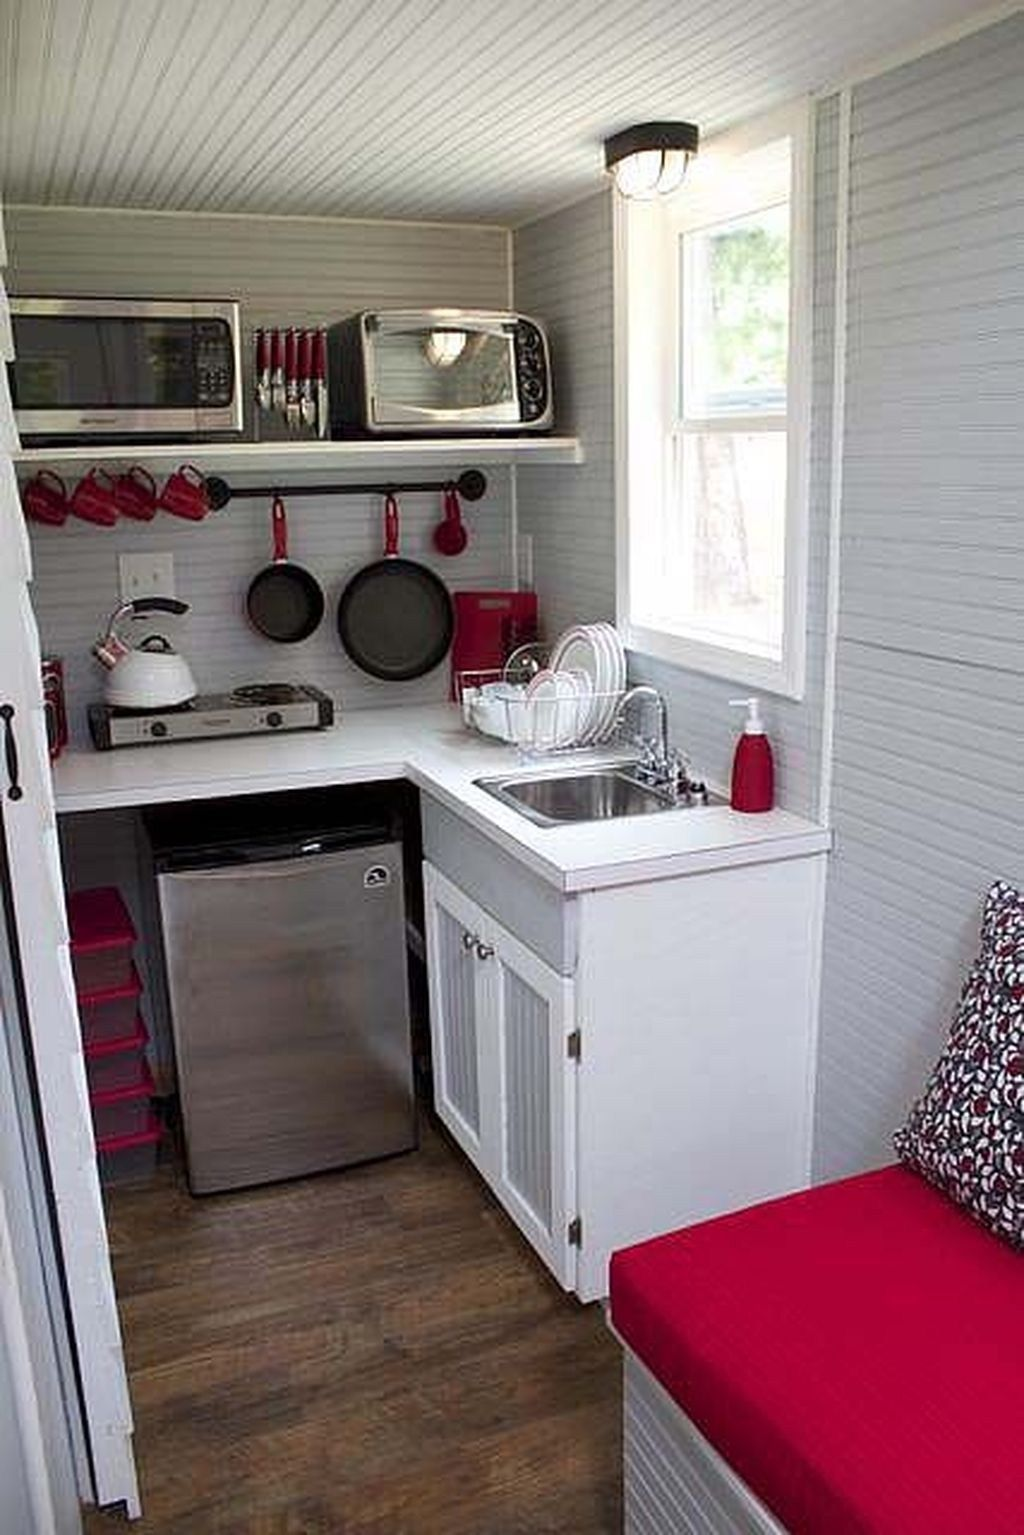 Best Simple Kitchen Design Ideas Simplekitchendesign Simplekitchen Kitchendesign Kitchenideas Tiny House Kitchen Kitchen Design Small Tiny House Living